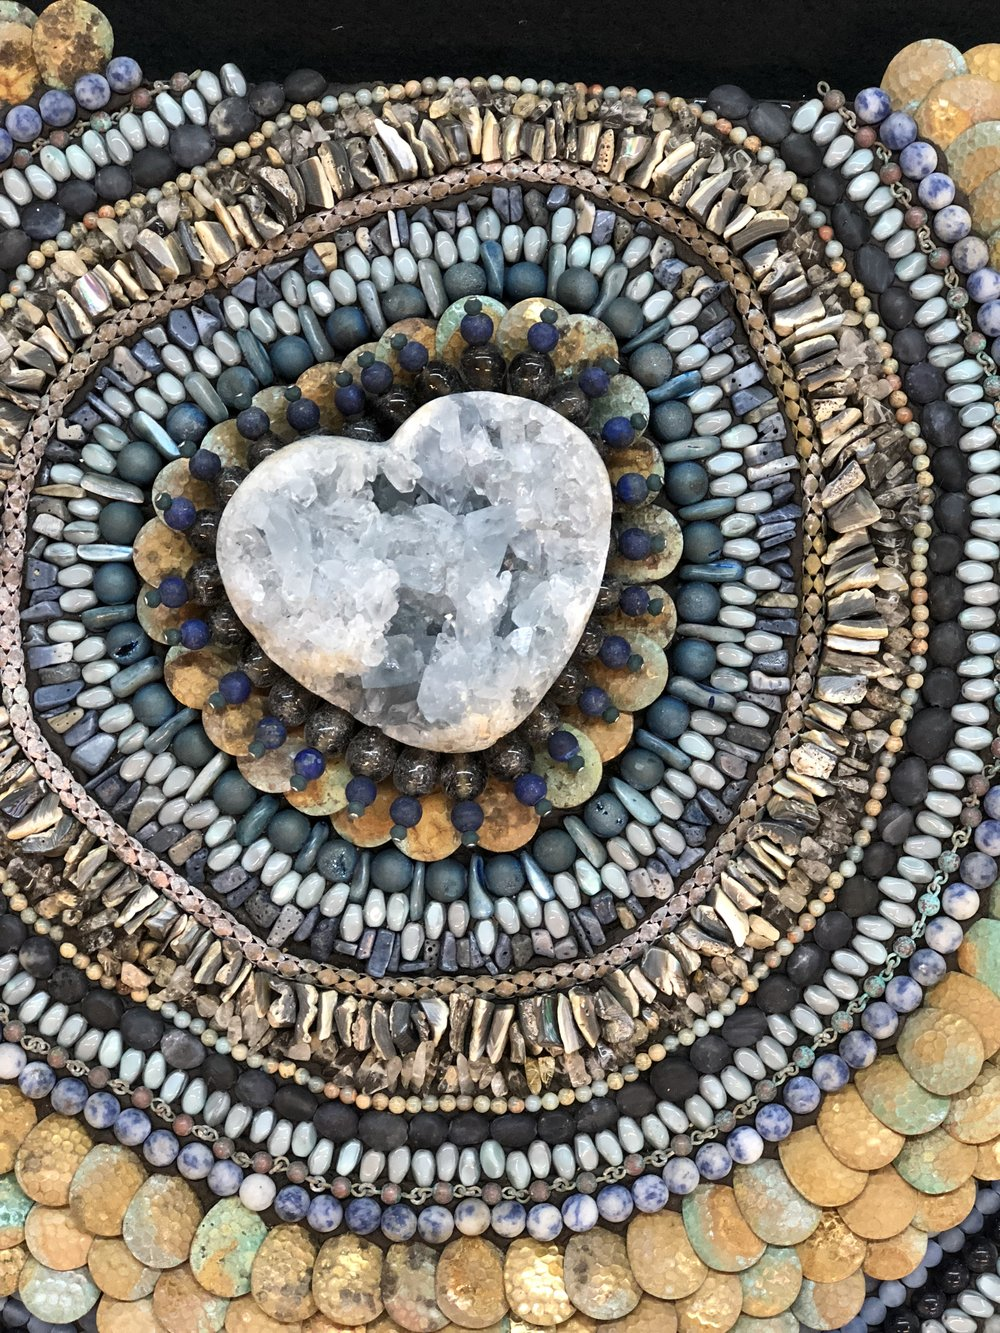 """Loving Blues"" - Using a color palette in rust & blues, I was able to create texture and movement, growing out from the center, by manipulating the scale and direction of the beads."